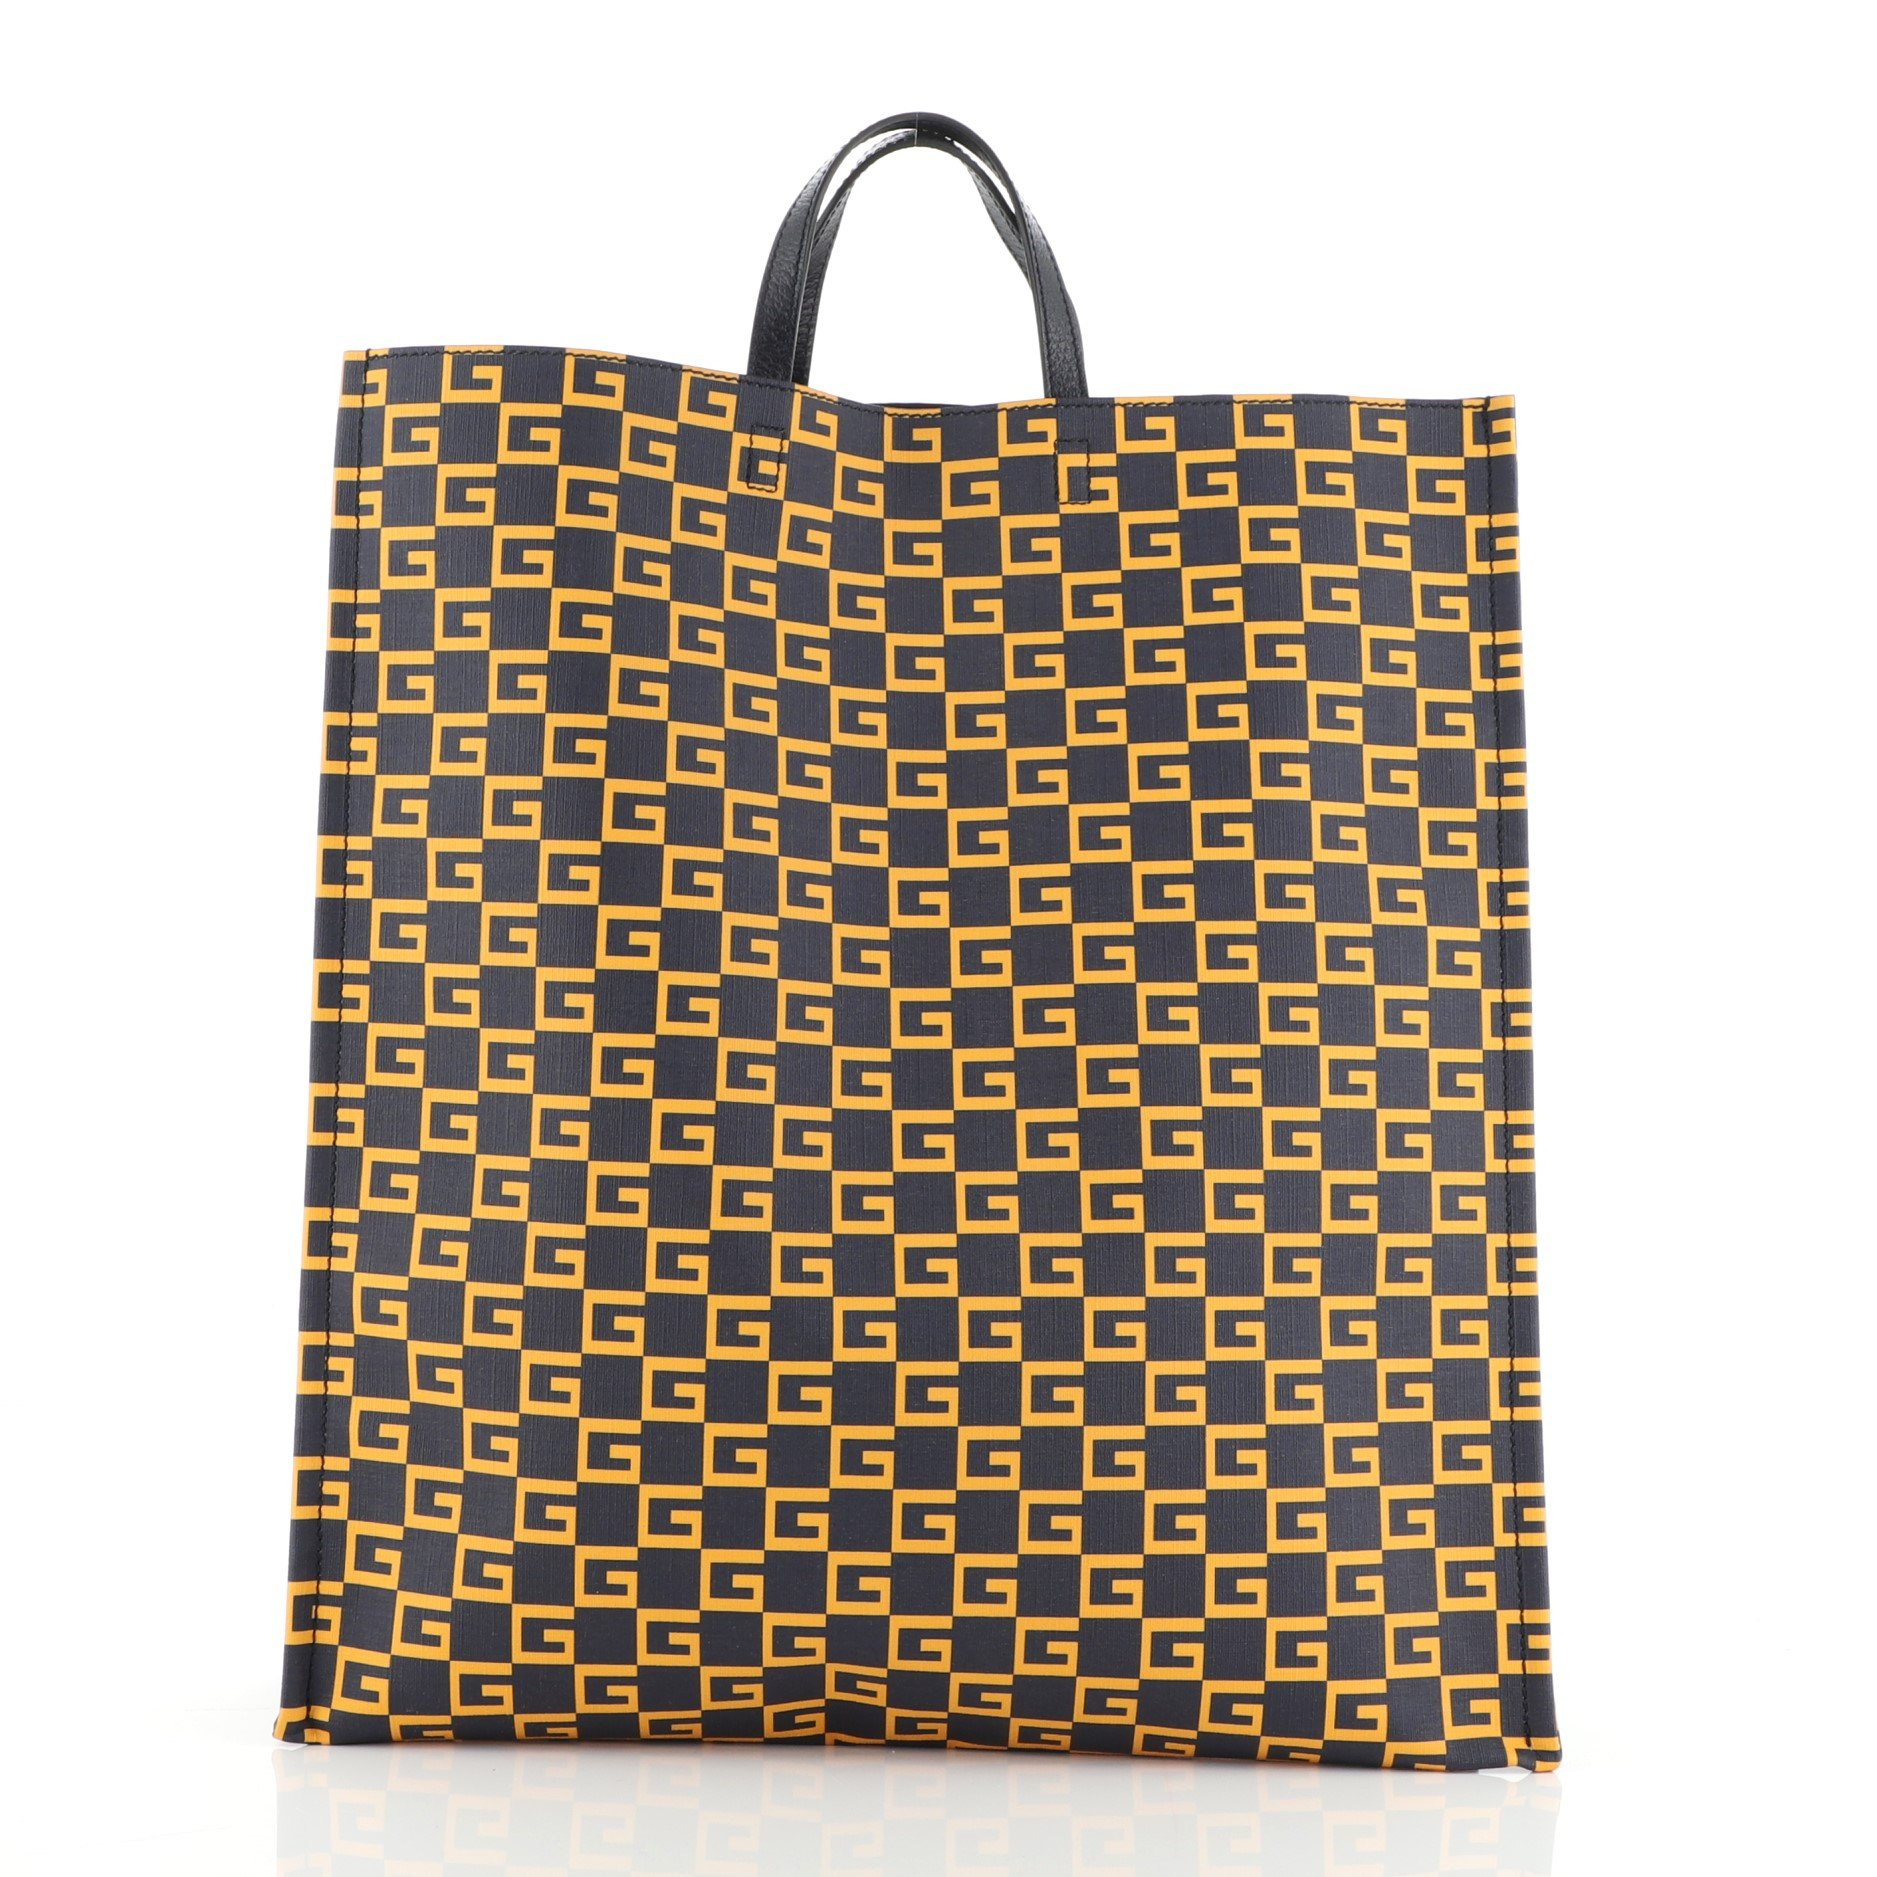 Tiger Neon New Large Canvas Tote Bag Travel Shop Events Gifts